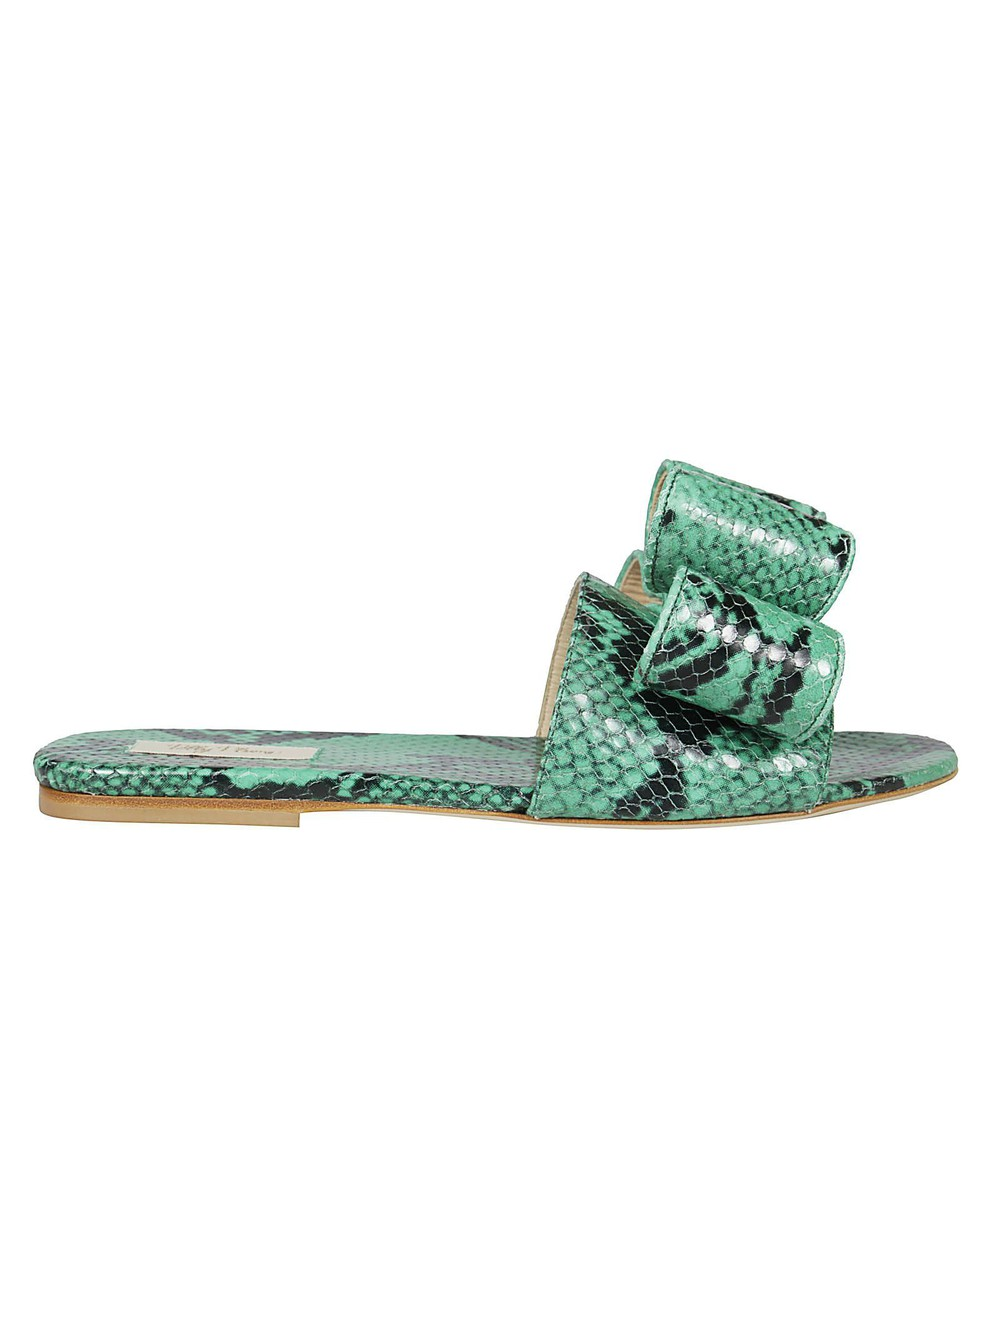 Polly Plume Lola Bow Flat Sandals in green